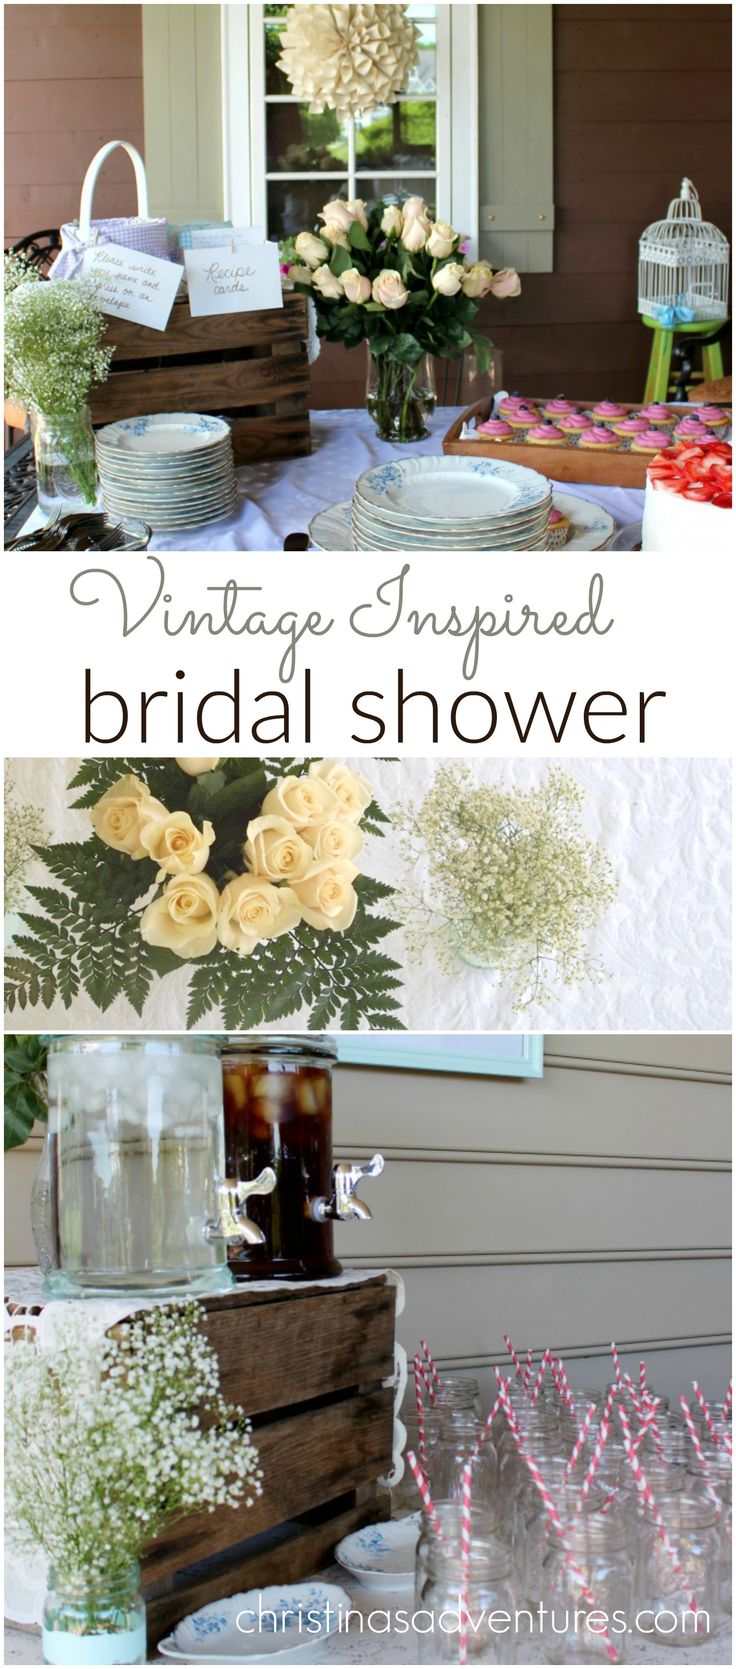 Vintage inspired+ bridal shower. This outdoors shower has lots of simple DIY ideas and beautiful inspiration pictures!